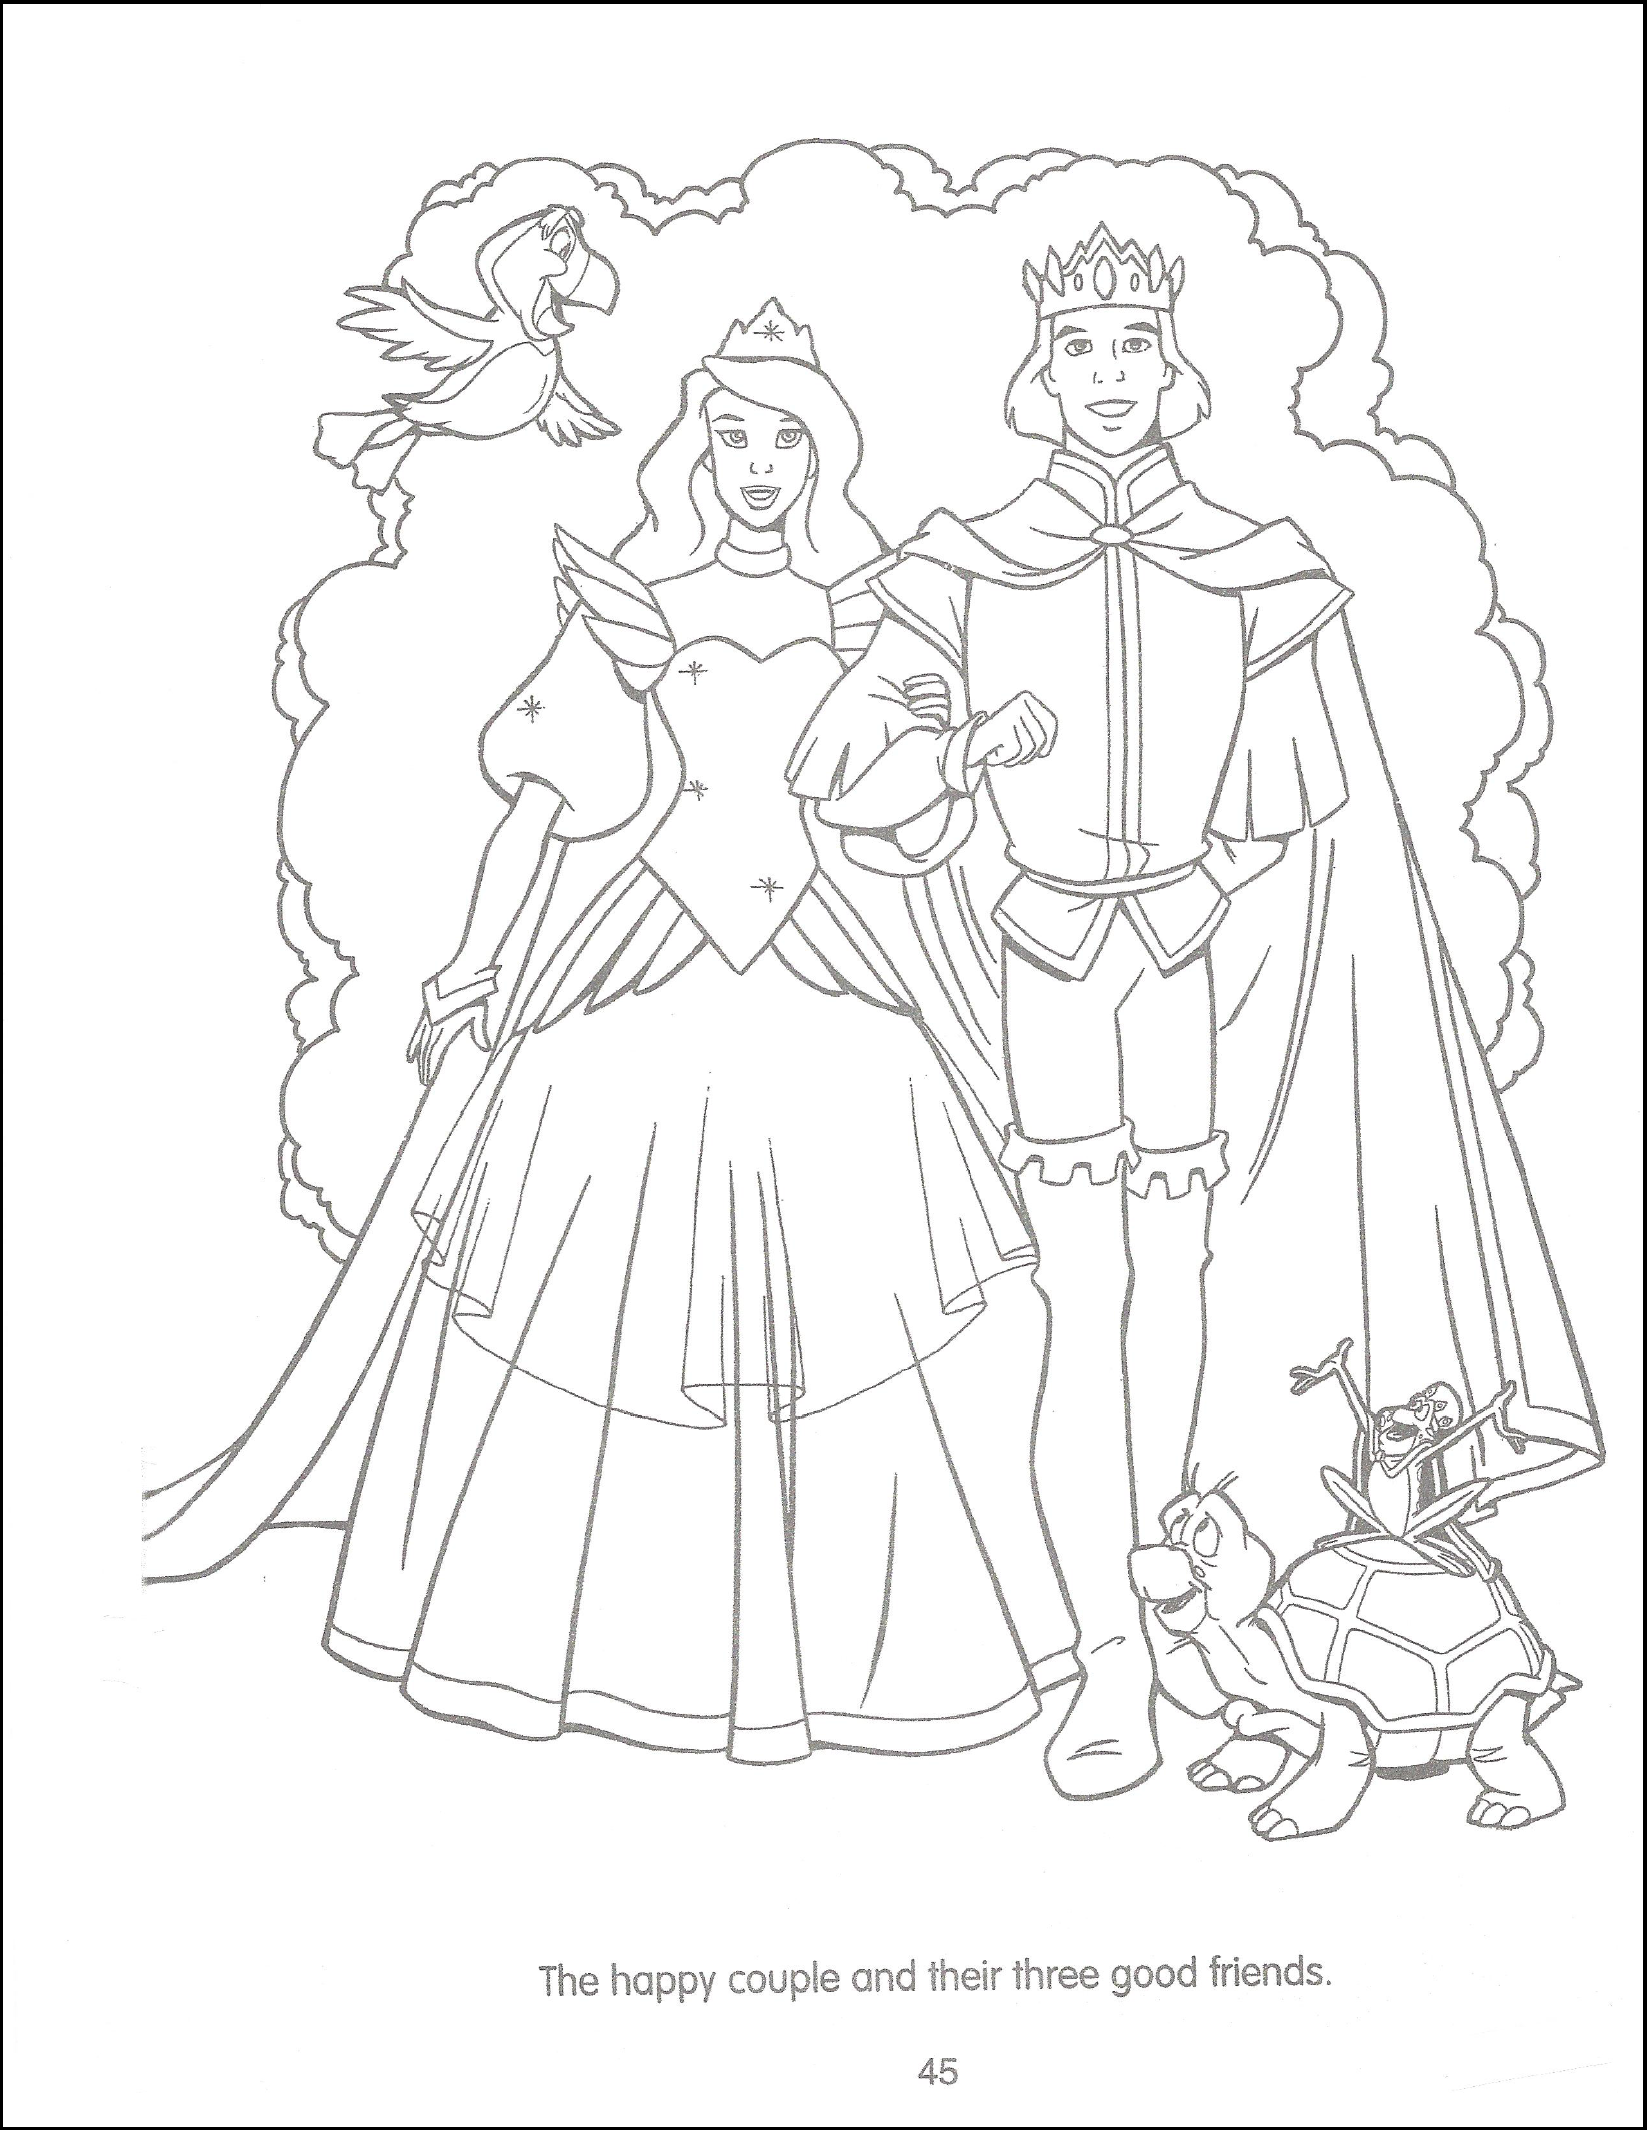 The Swan Princess Funtime Activity Book Princess Coloring Pages Disney Princess Coloring Pages Princess Coloring